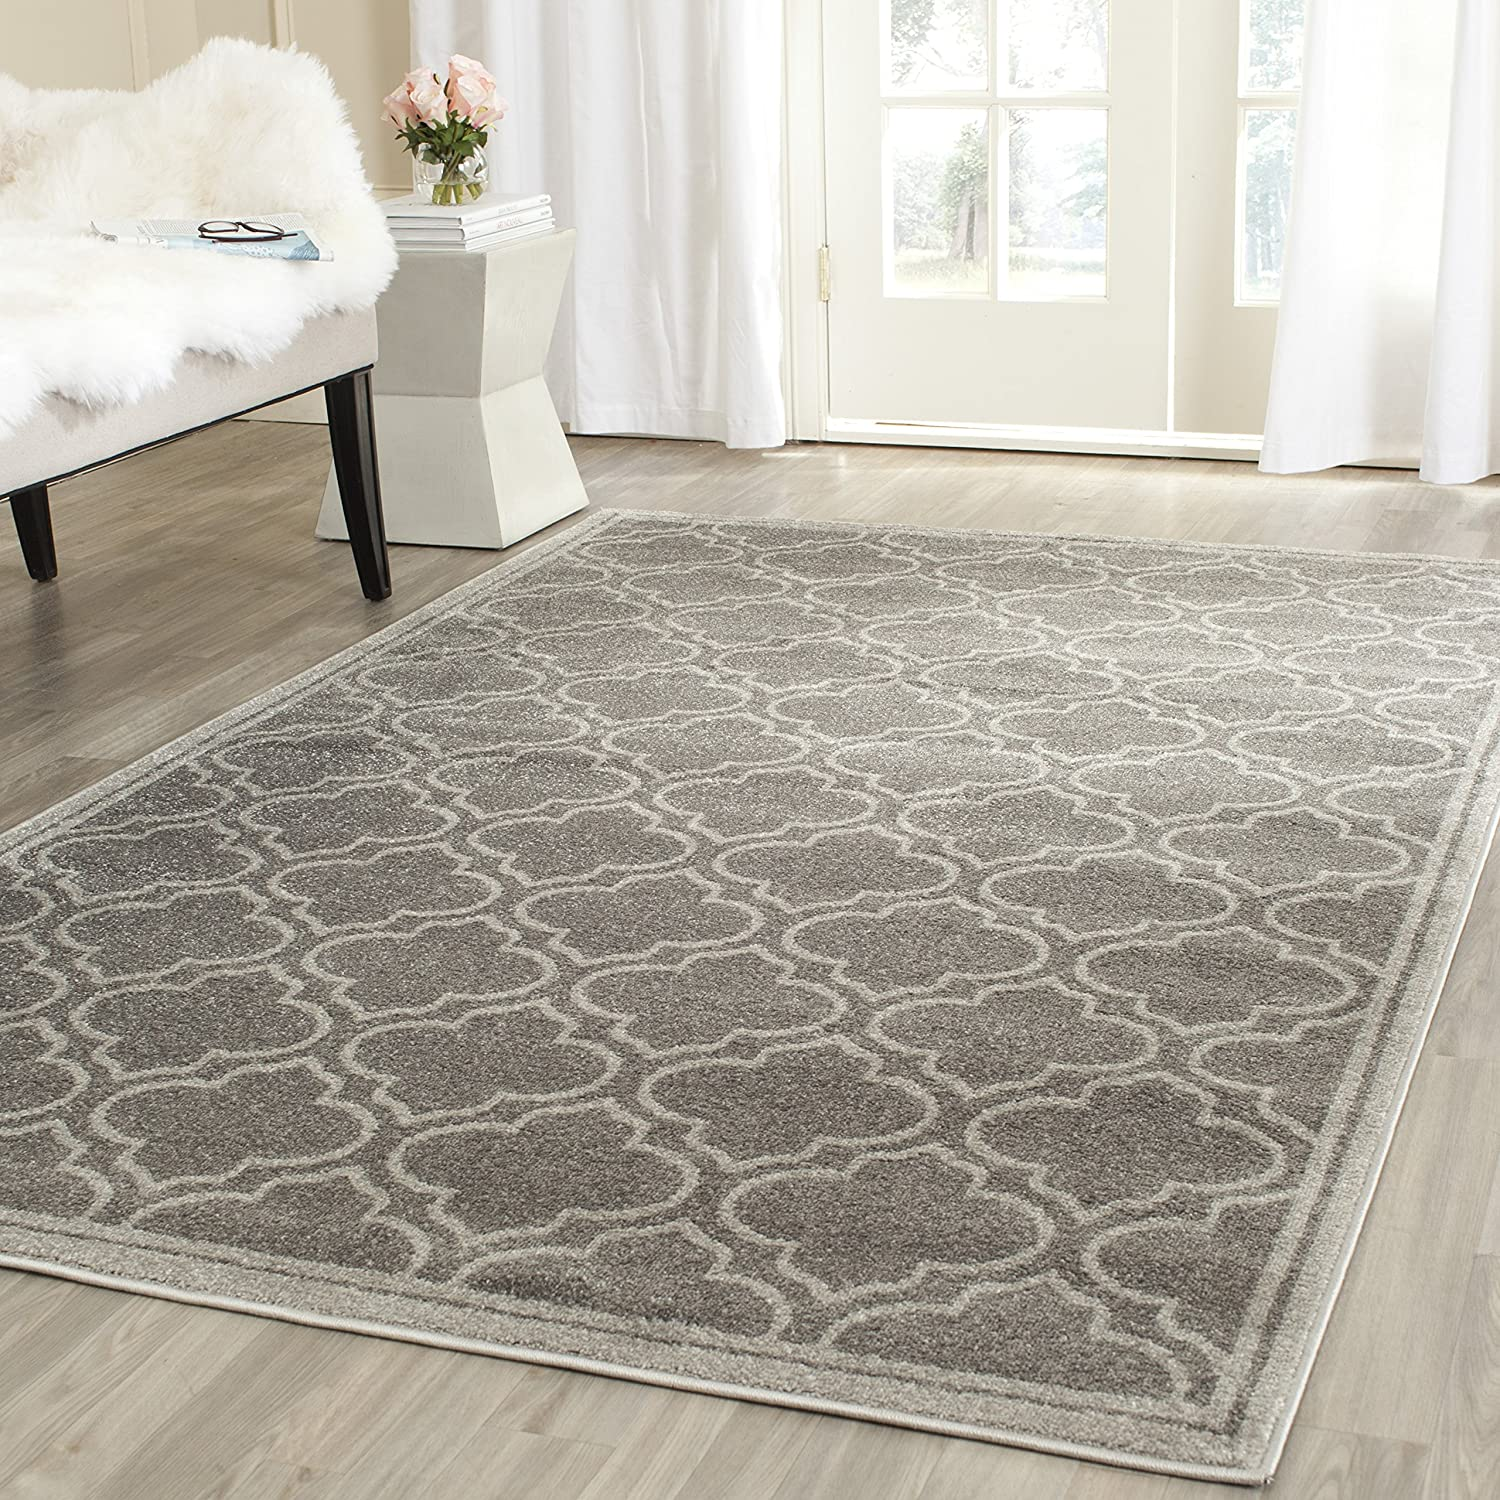 alcott beigegrey grey pdp and rug hill beige area nisbett rugs ca reviews wayfair